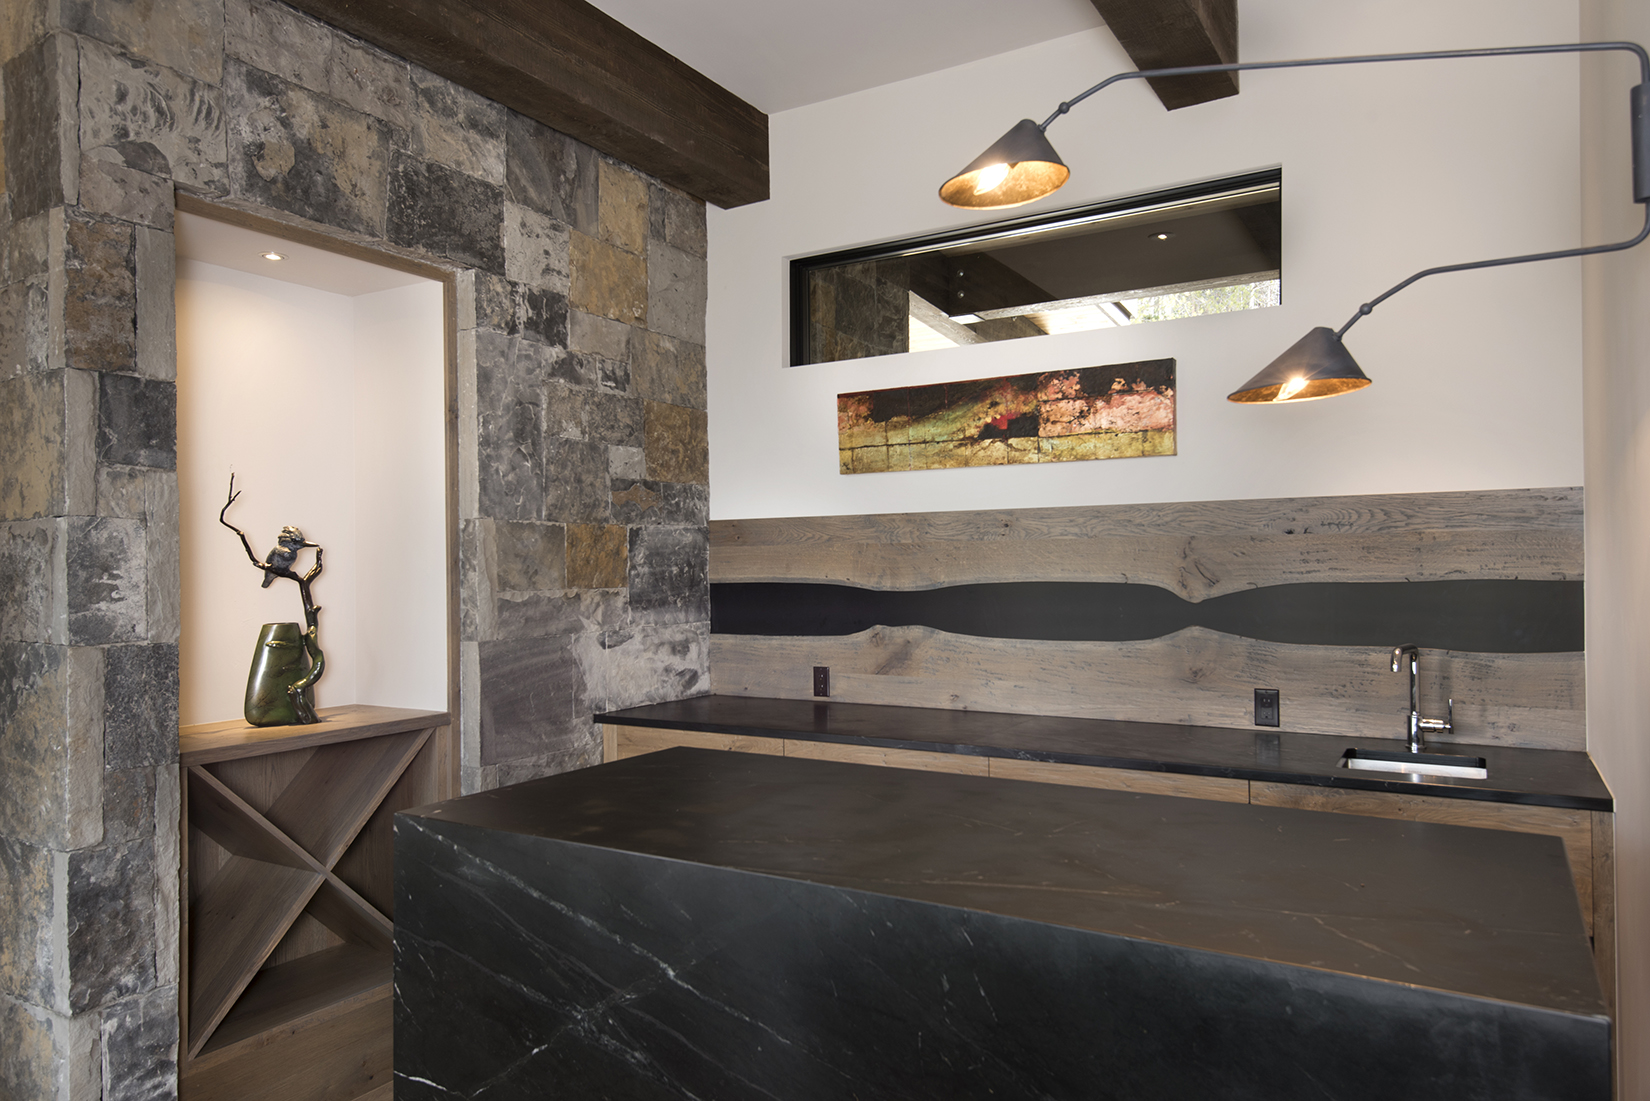 164 Imperial Way, Wet Bar